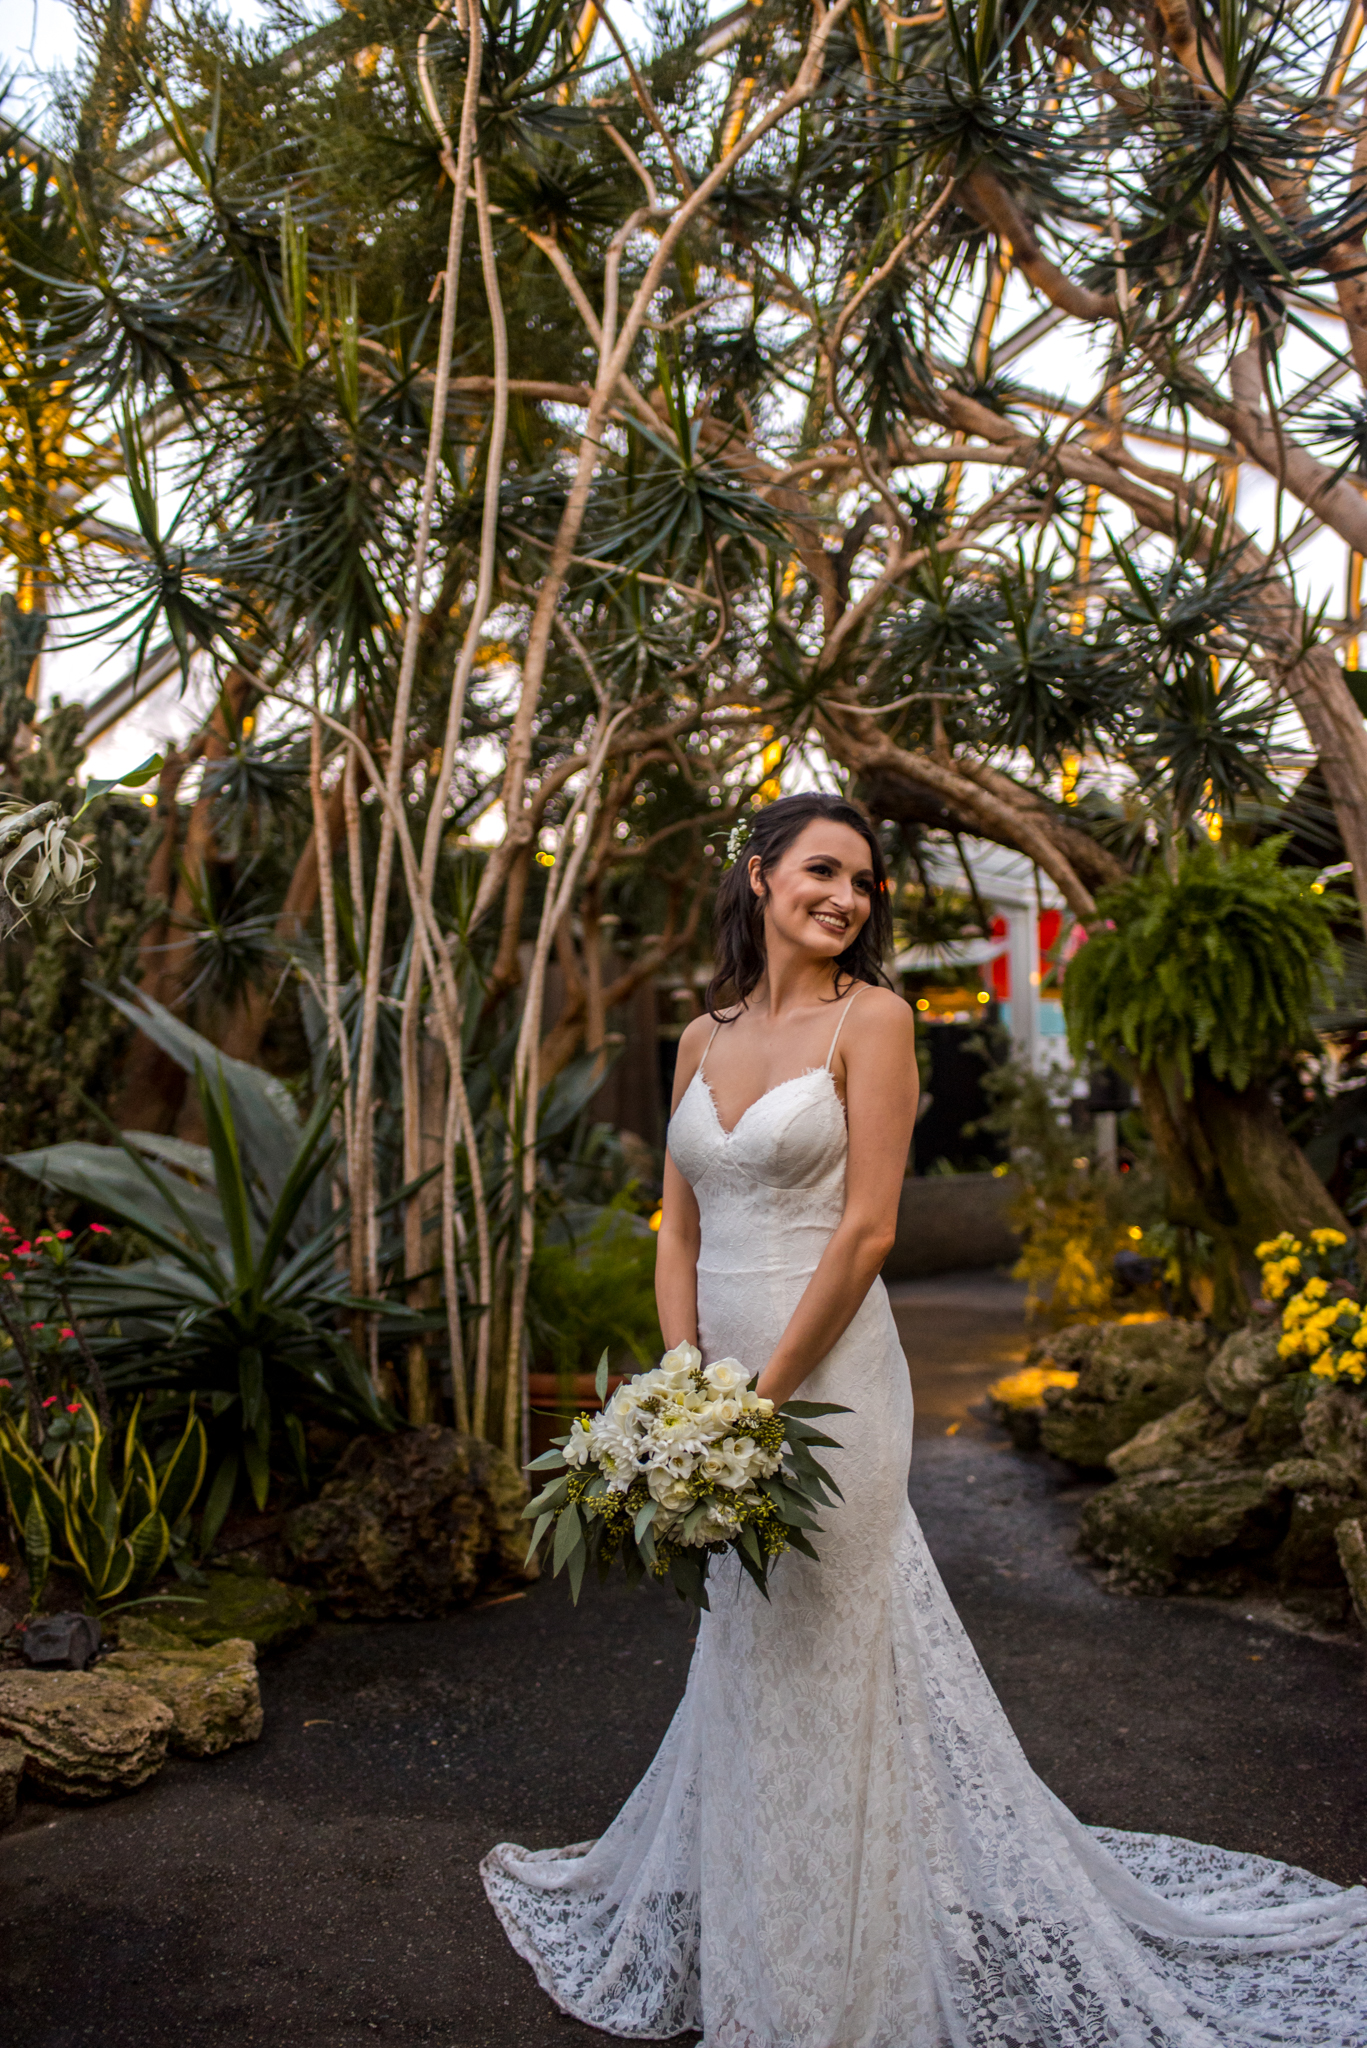 Queen Elizabeth Park Wedding Photographer-73.jpg